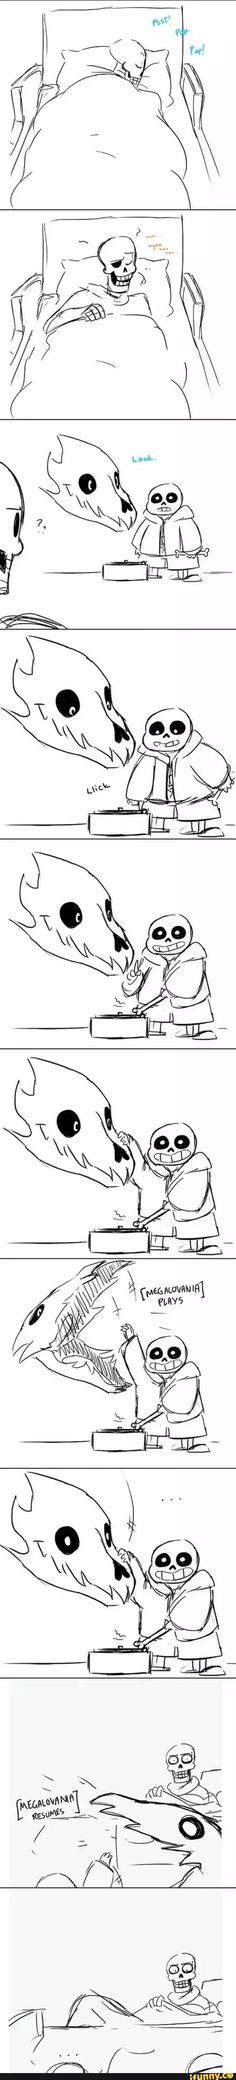 sans and papyrus comic; lilo and stitch crossover